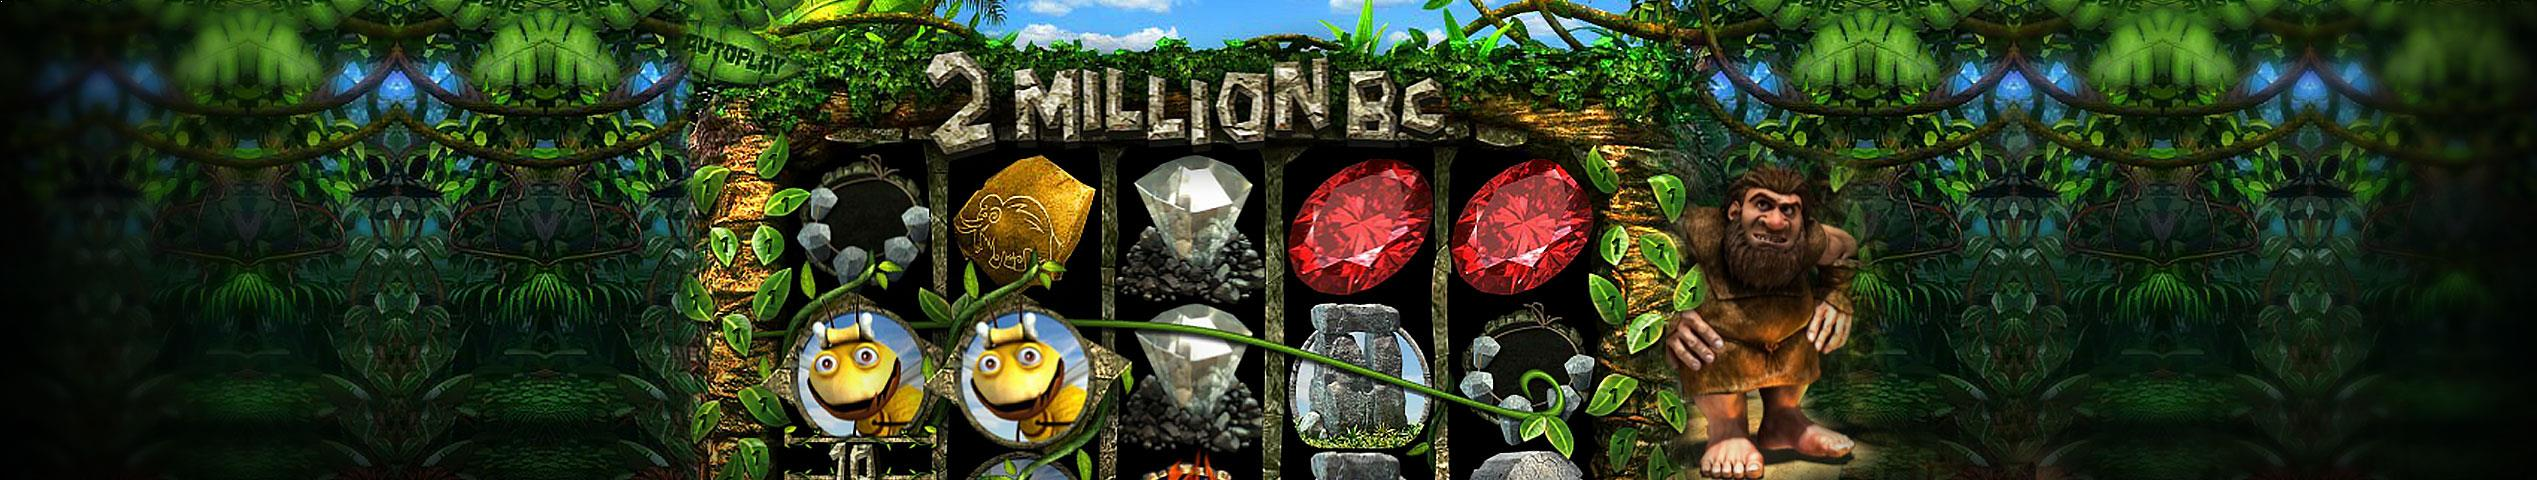 Million B.C.  Multa Baft jocuri slot slider Betsoft